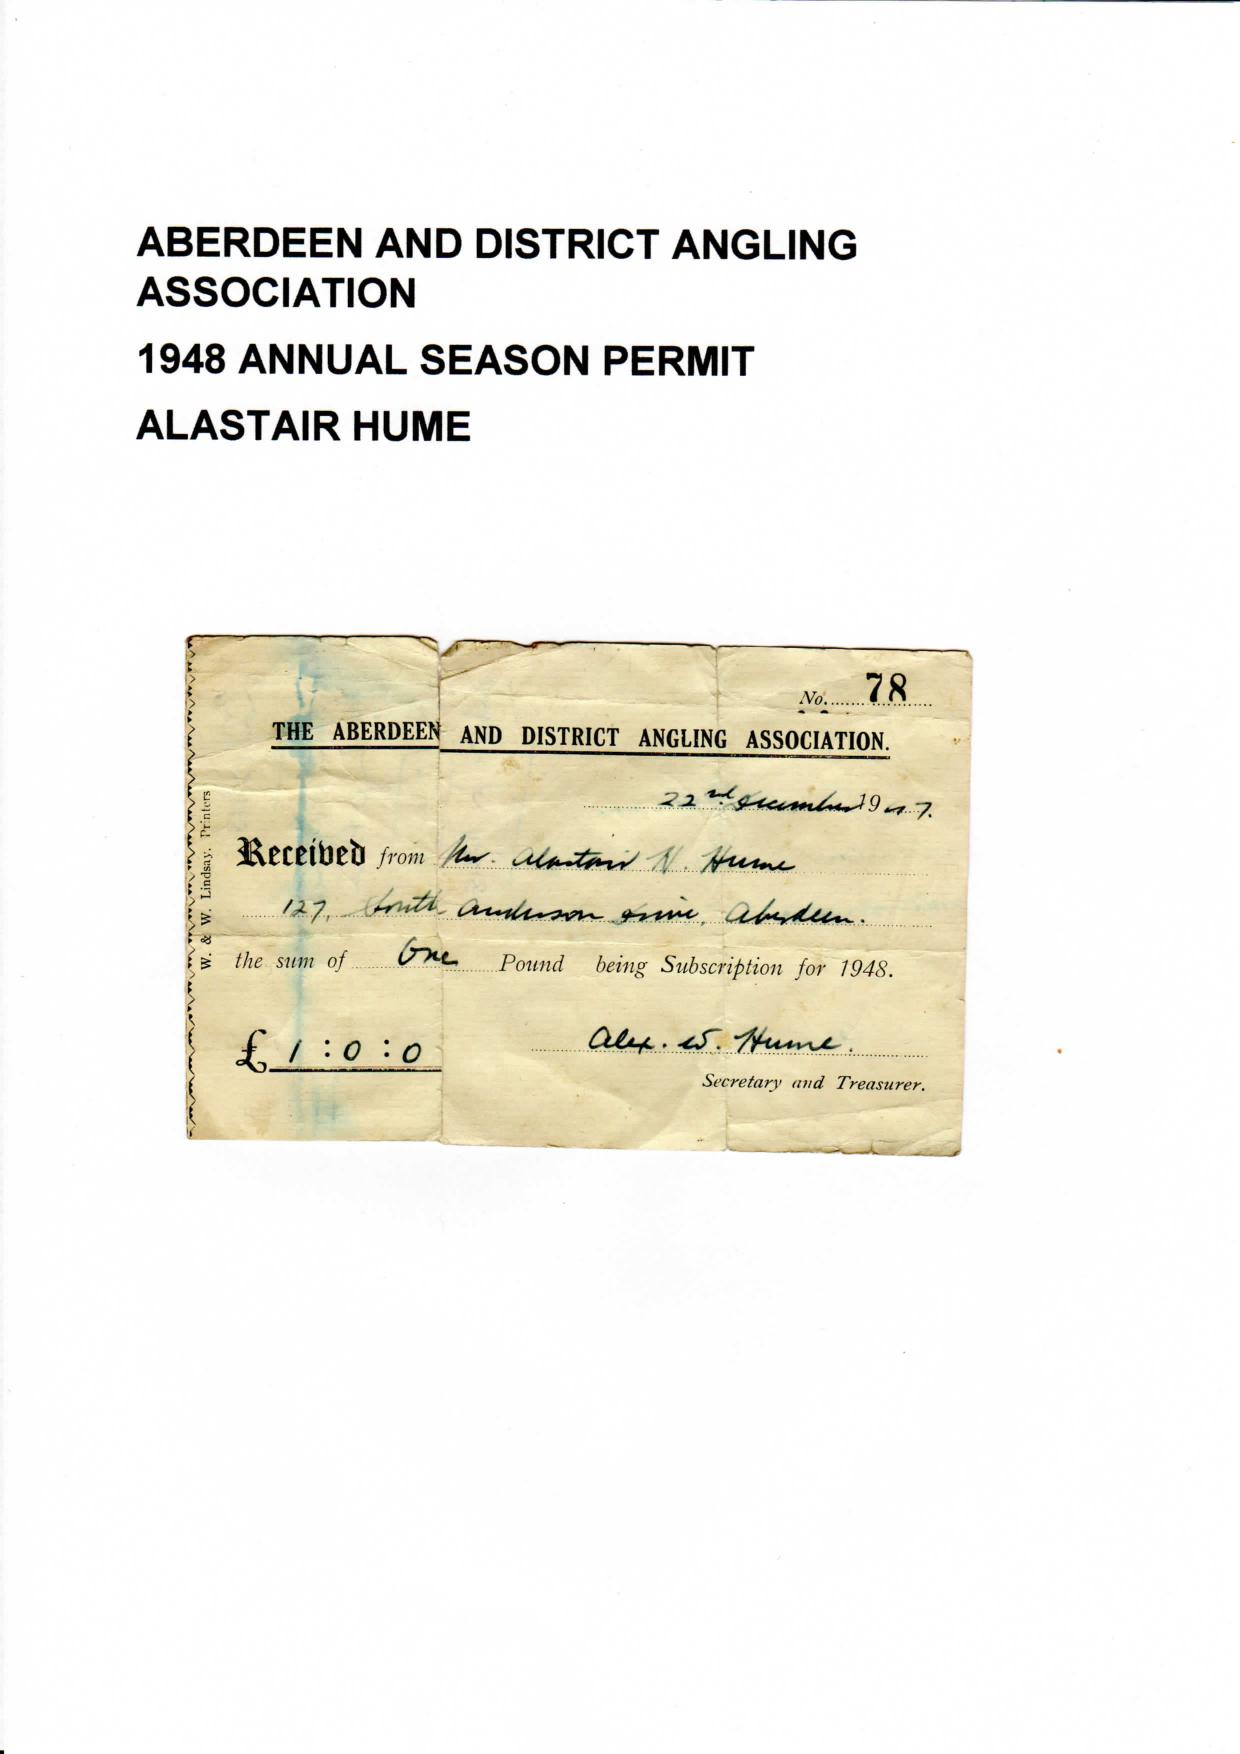 1948 adaa permit Alastair Hume-page-001